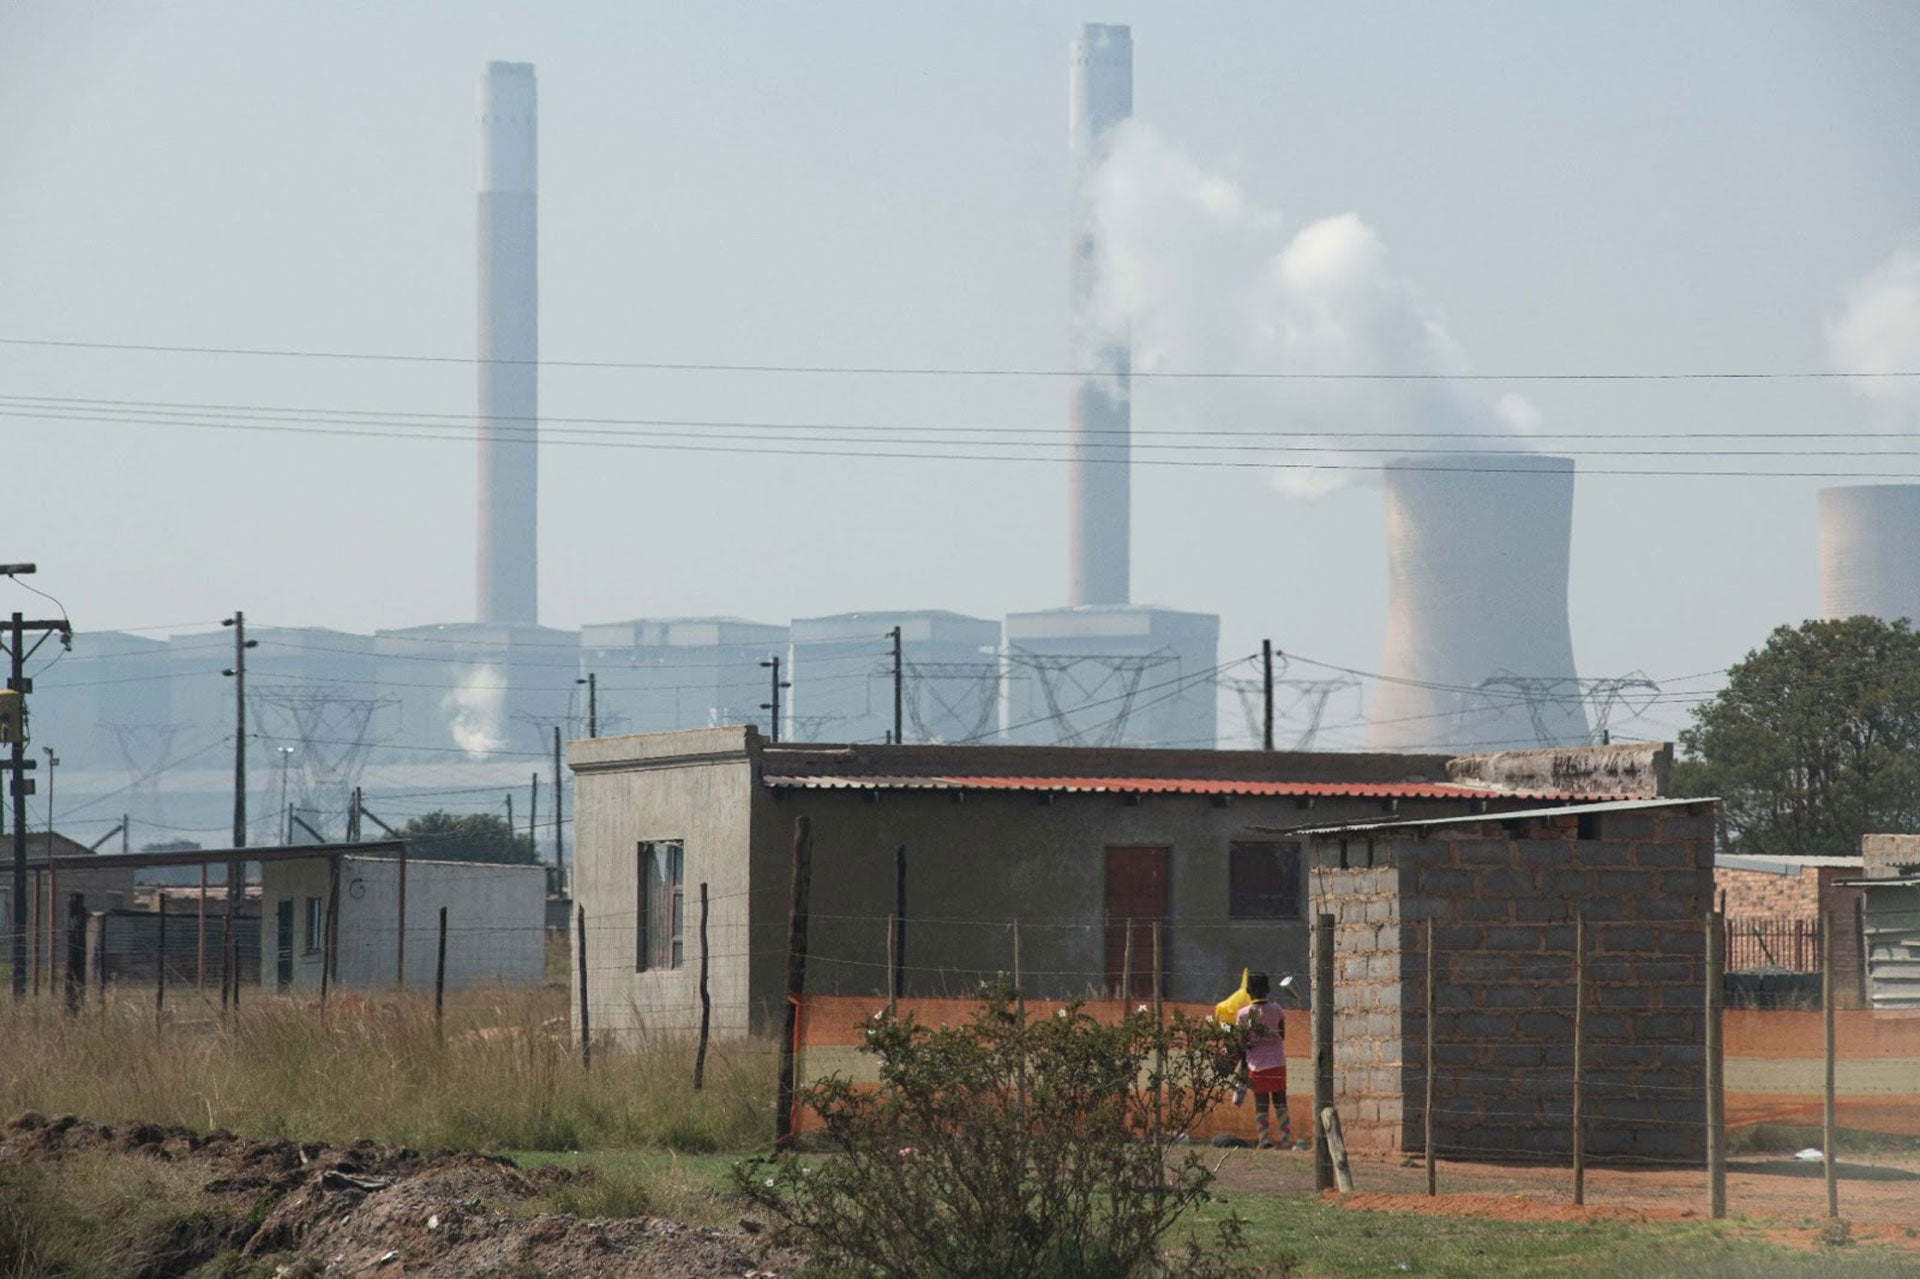 South Africa's 'Deadly Air' Case Highlights Health Risks from Coal